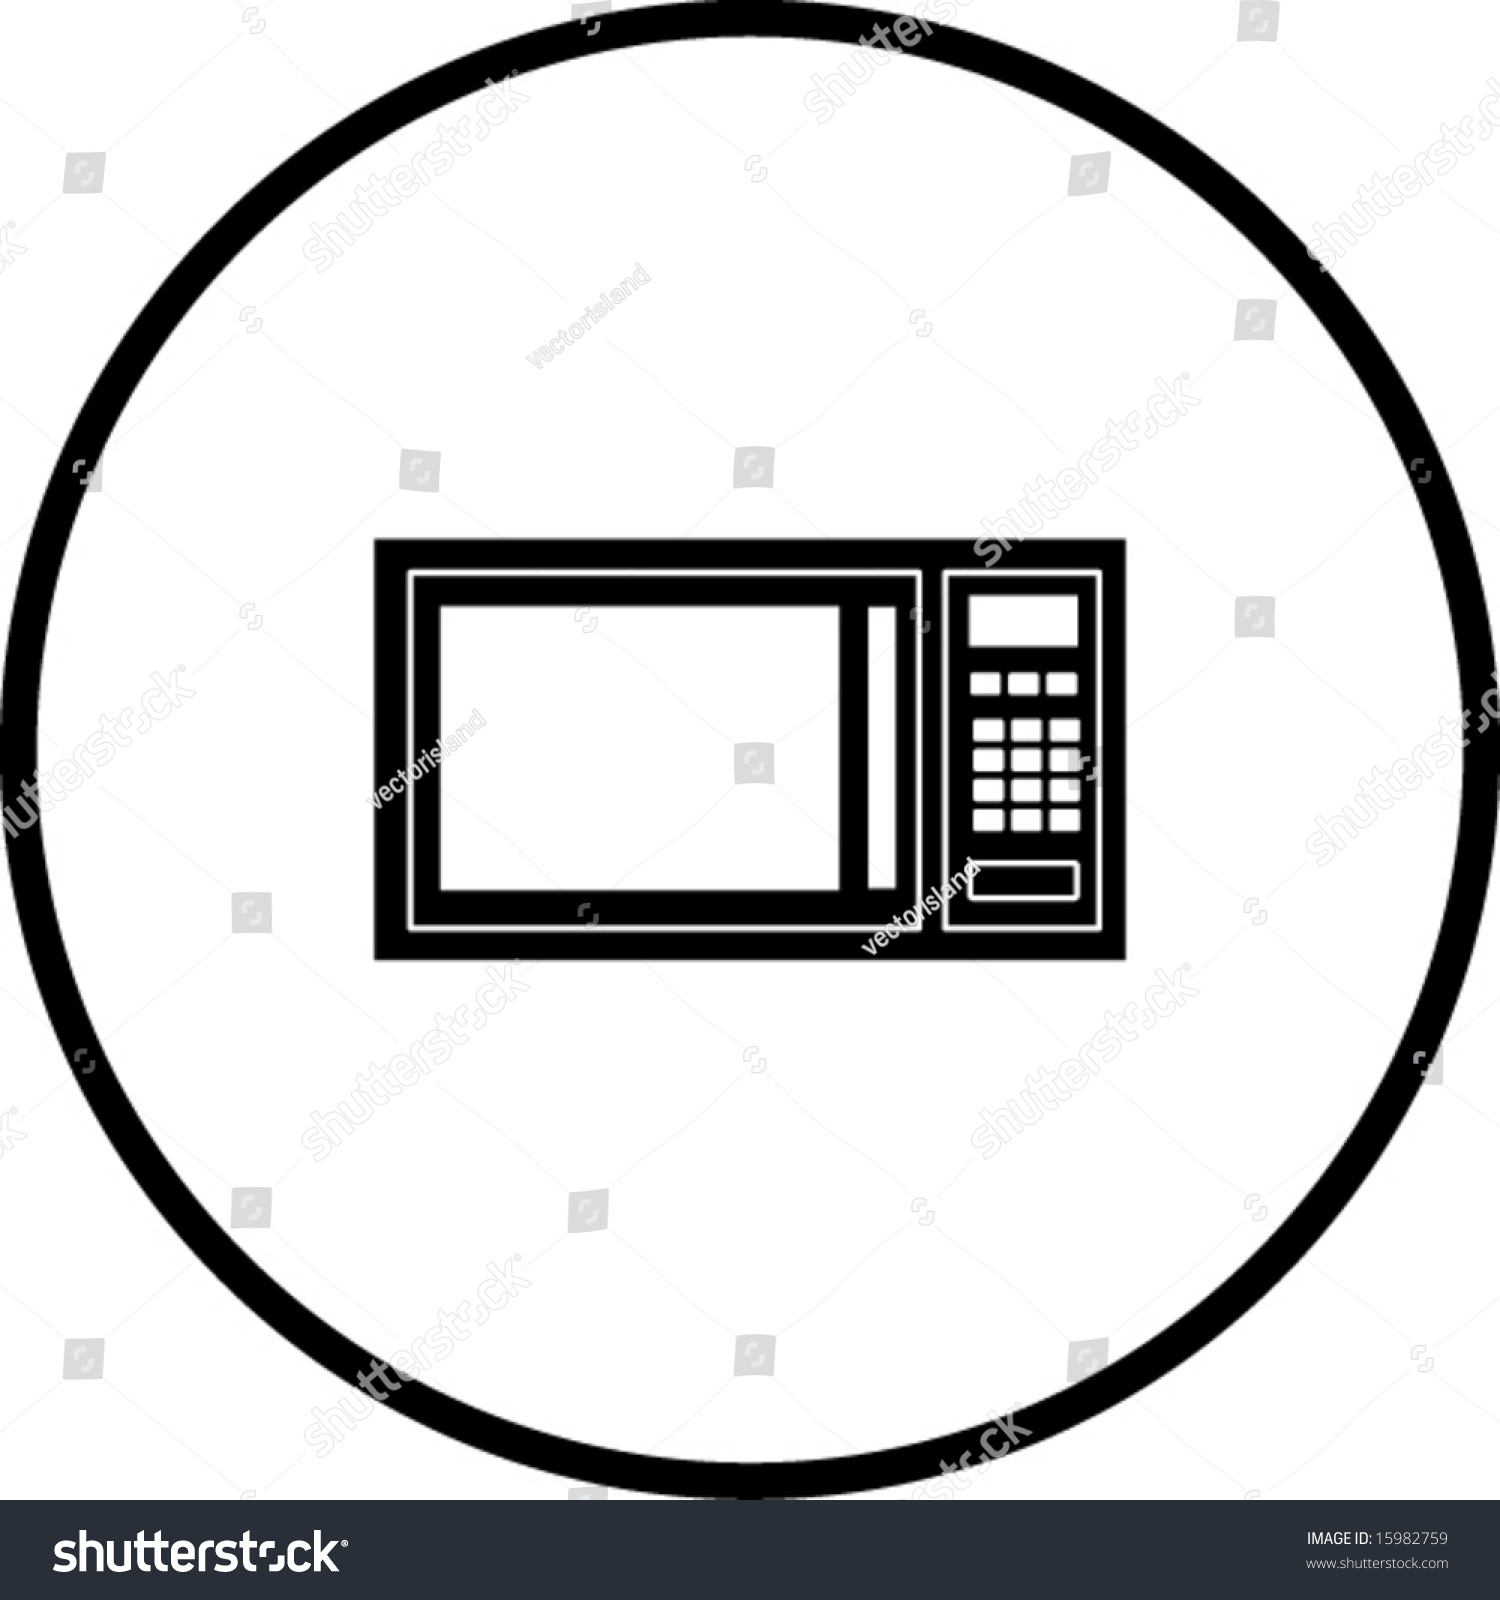 Microwave oven symbol stock vector 15982759 shutterstock microwave oven symbol buycottarizona Image collections